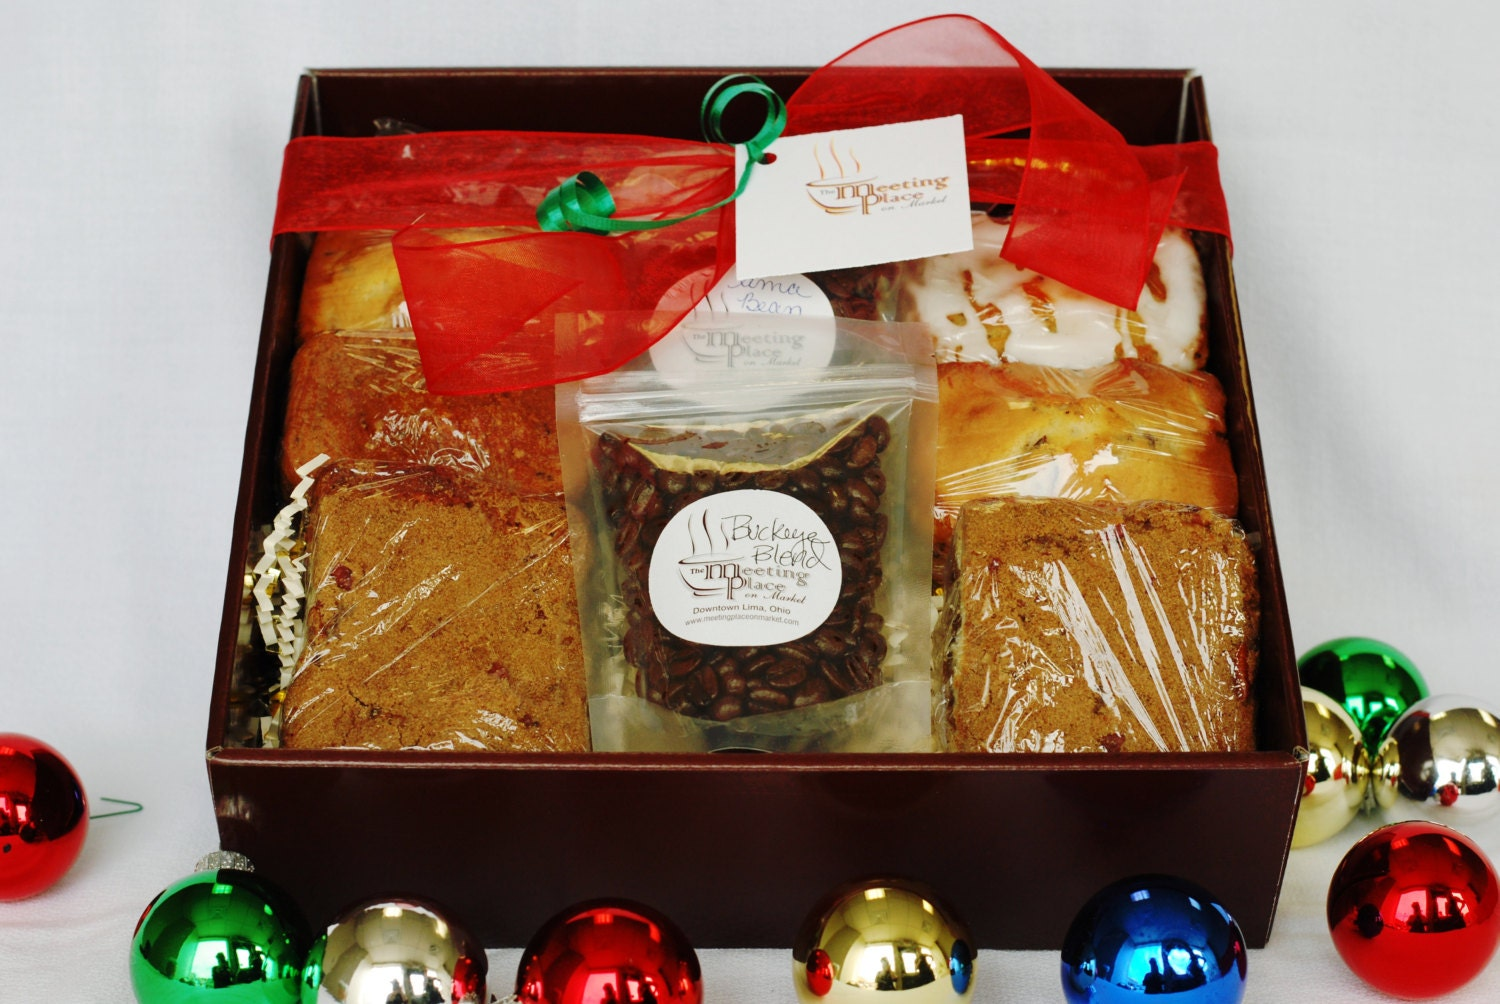 Gluten Free Gourmet Gift Basket With Coffee Homemade Baked